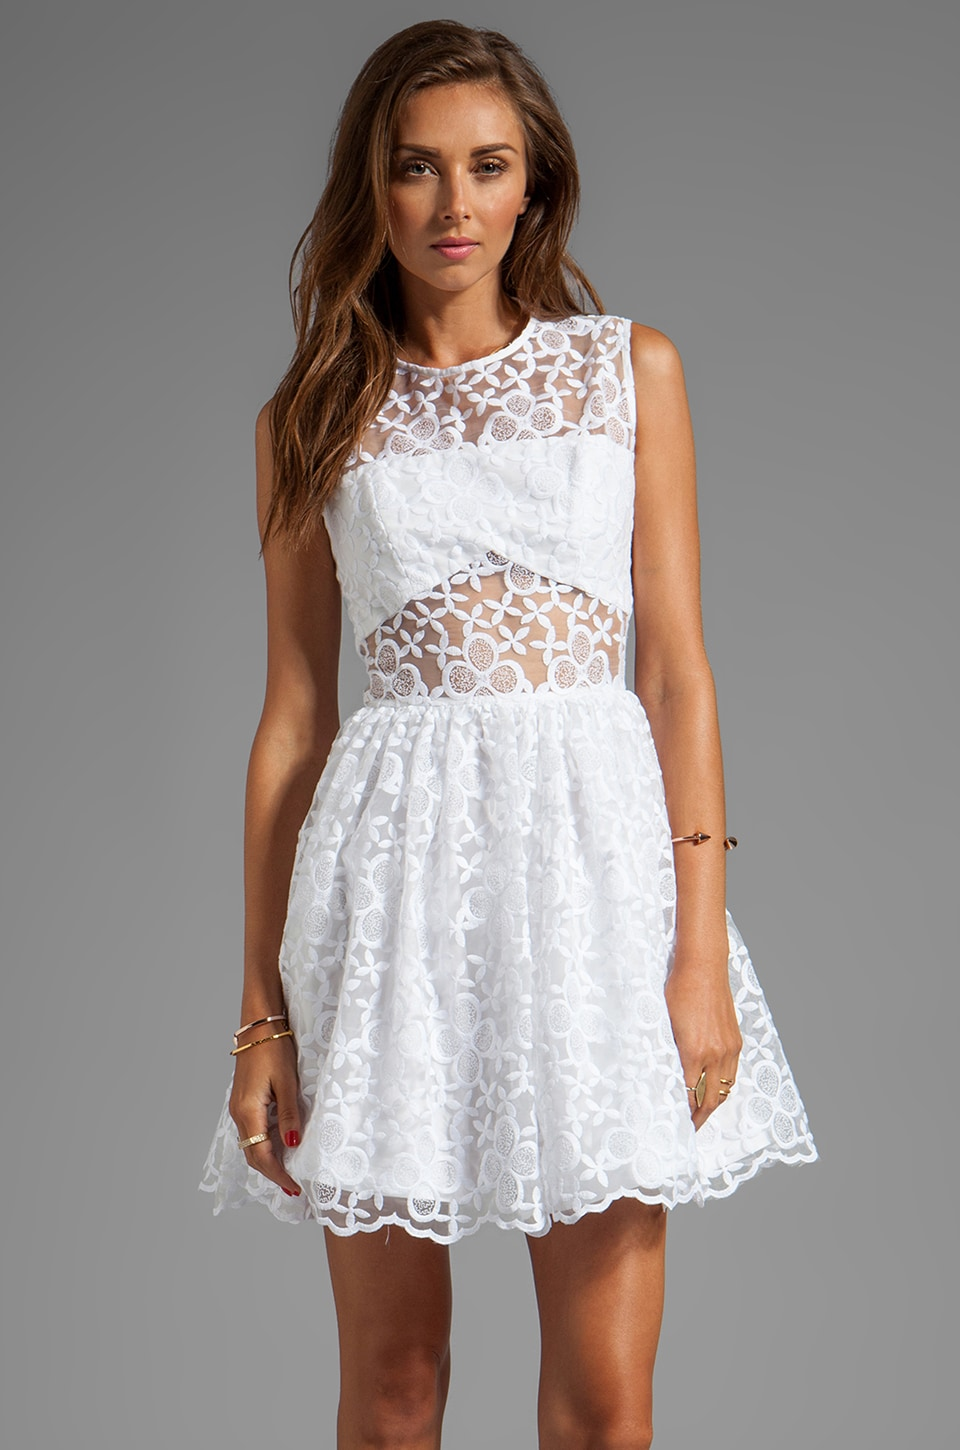 Alexis Finna Short Cocktail Dress in White Flower